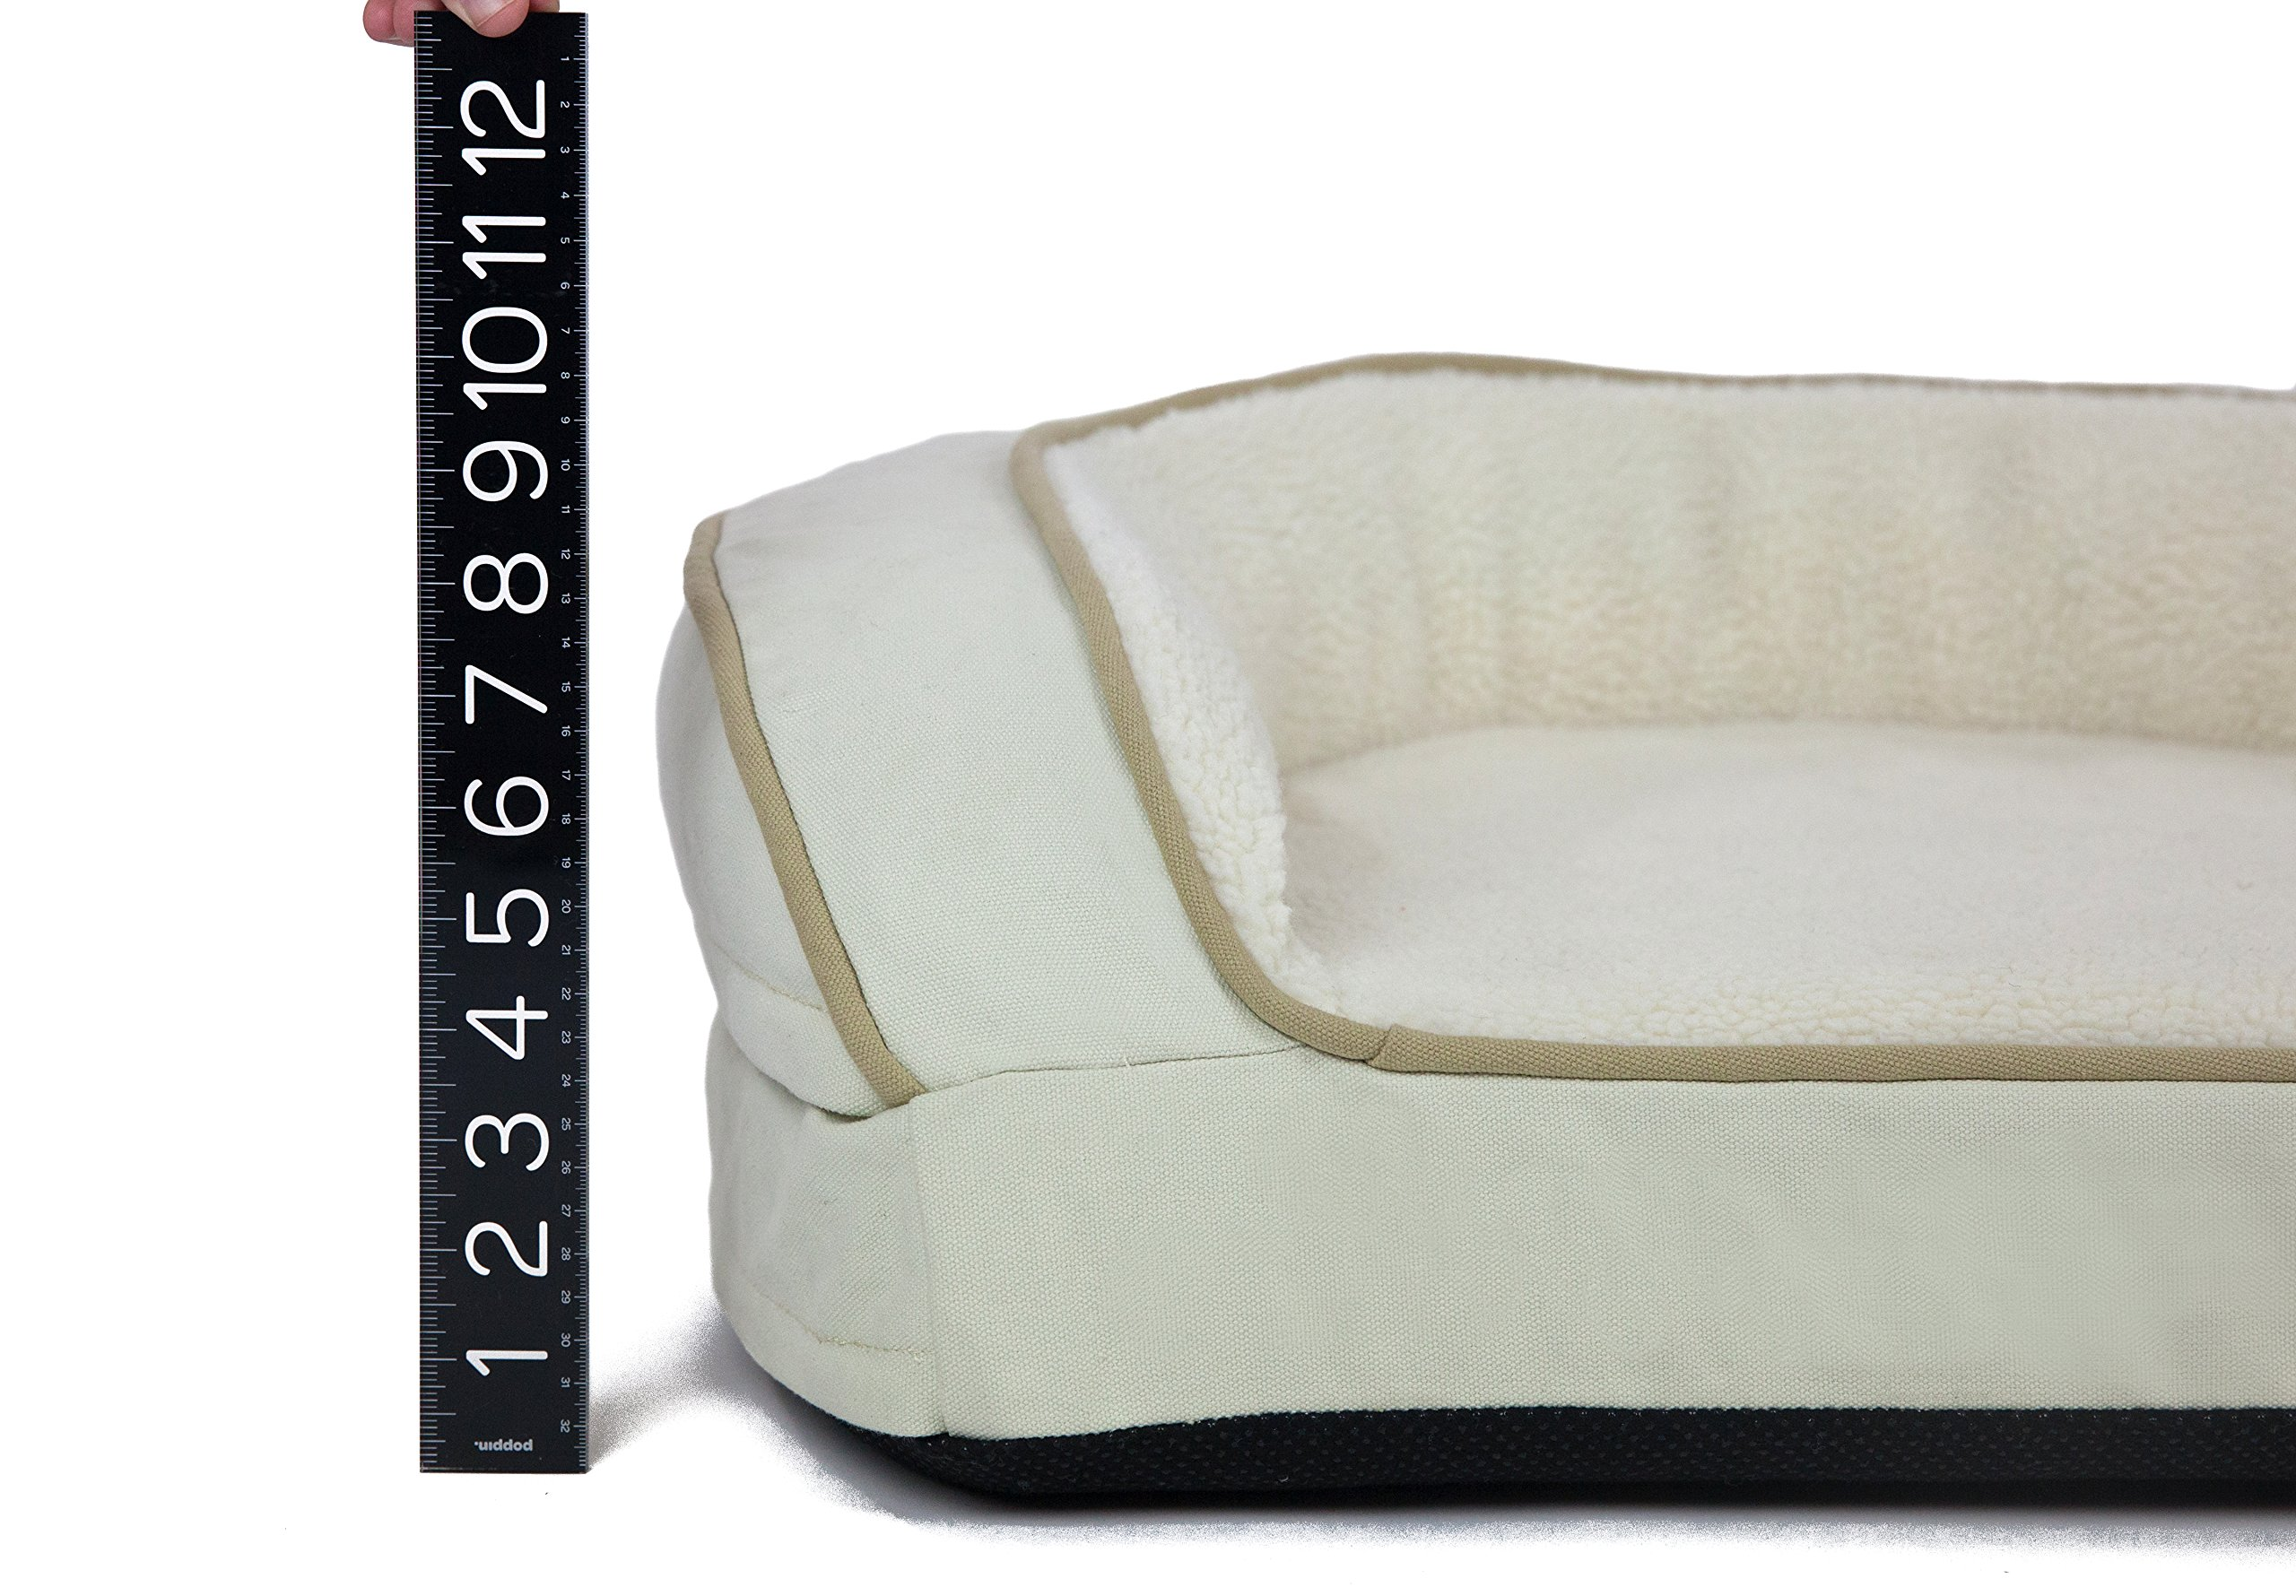 Better World Pets Super Comfort Bolster Dog Bed :: Waterproof Memory Foam Pet Bed with Durable Canvas Cover, Extra Plush Fleece + Foam Bolsters :: 4 Inch Thick, Washable, Small, White Sand by by Better World Pets (Image #8)